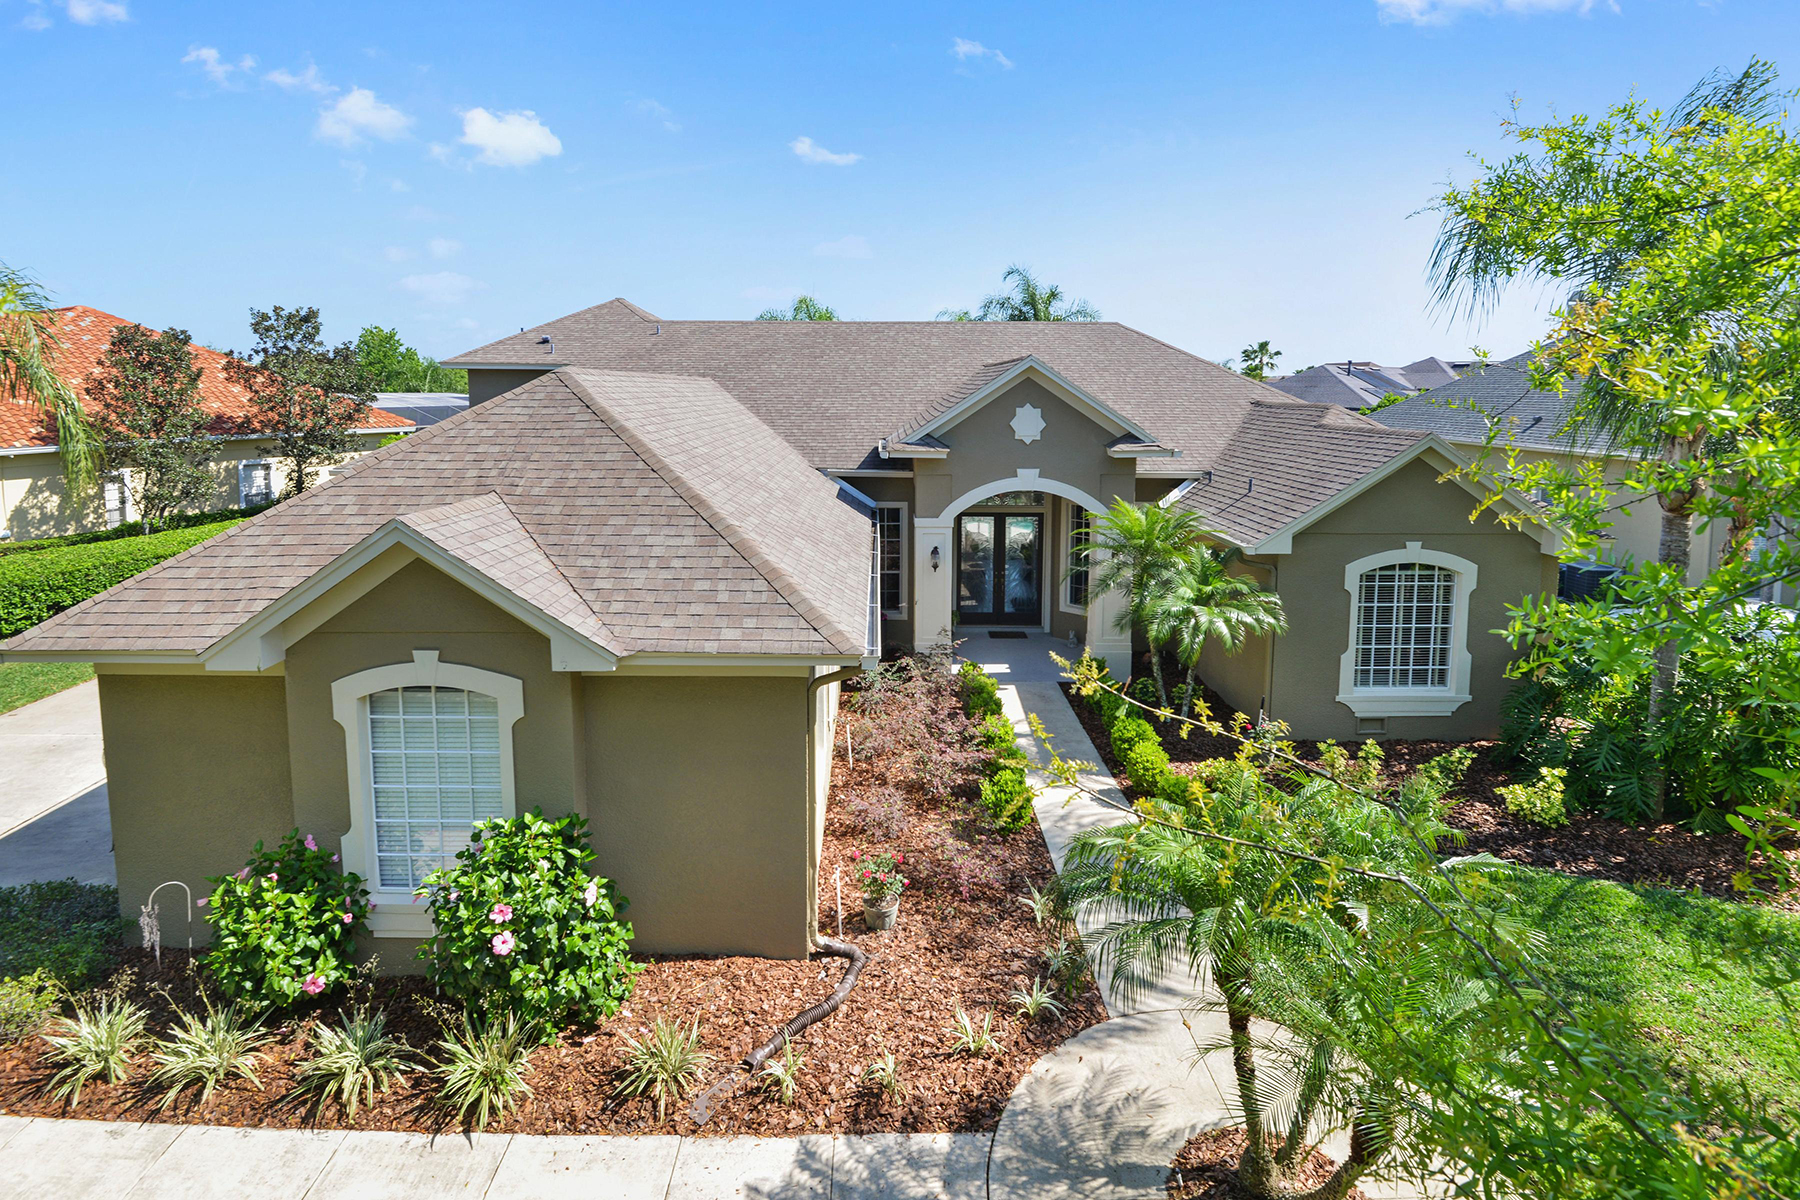 Single Family Home for Sale at ORLANDO - LAKE MARY 1720 Kersley Cir Lake Mary, Florida, 32746 United States